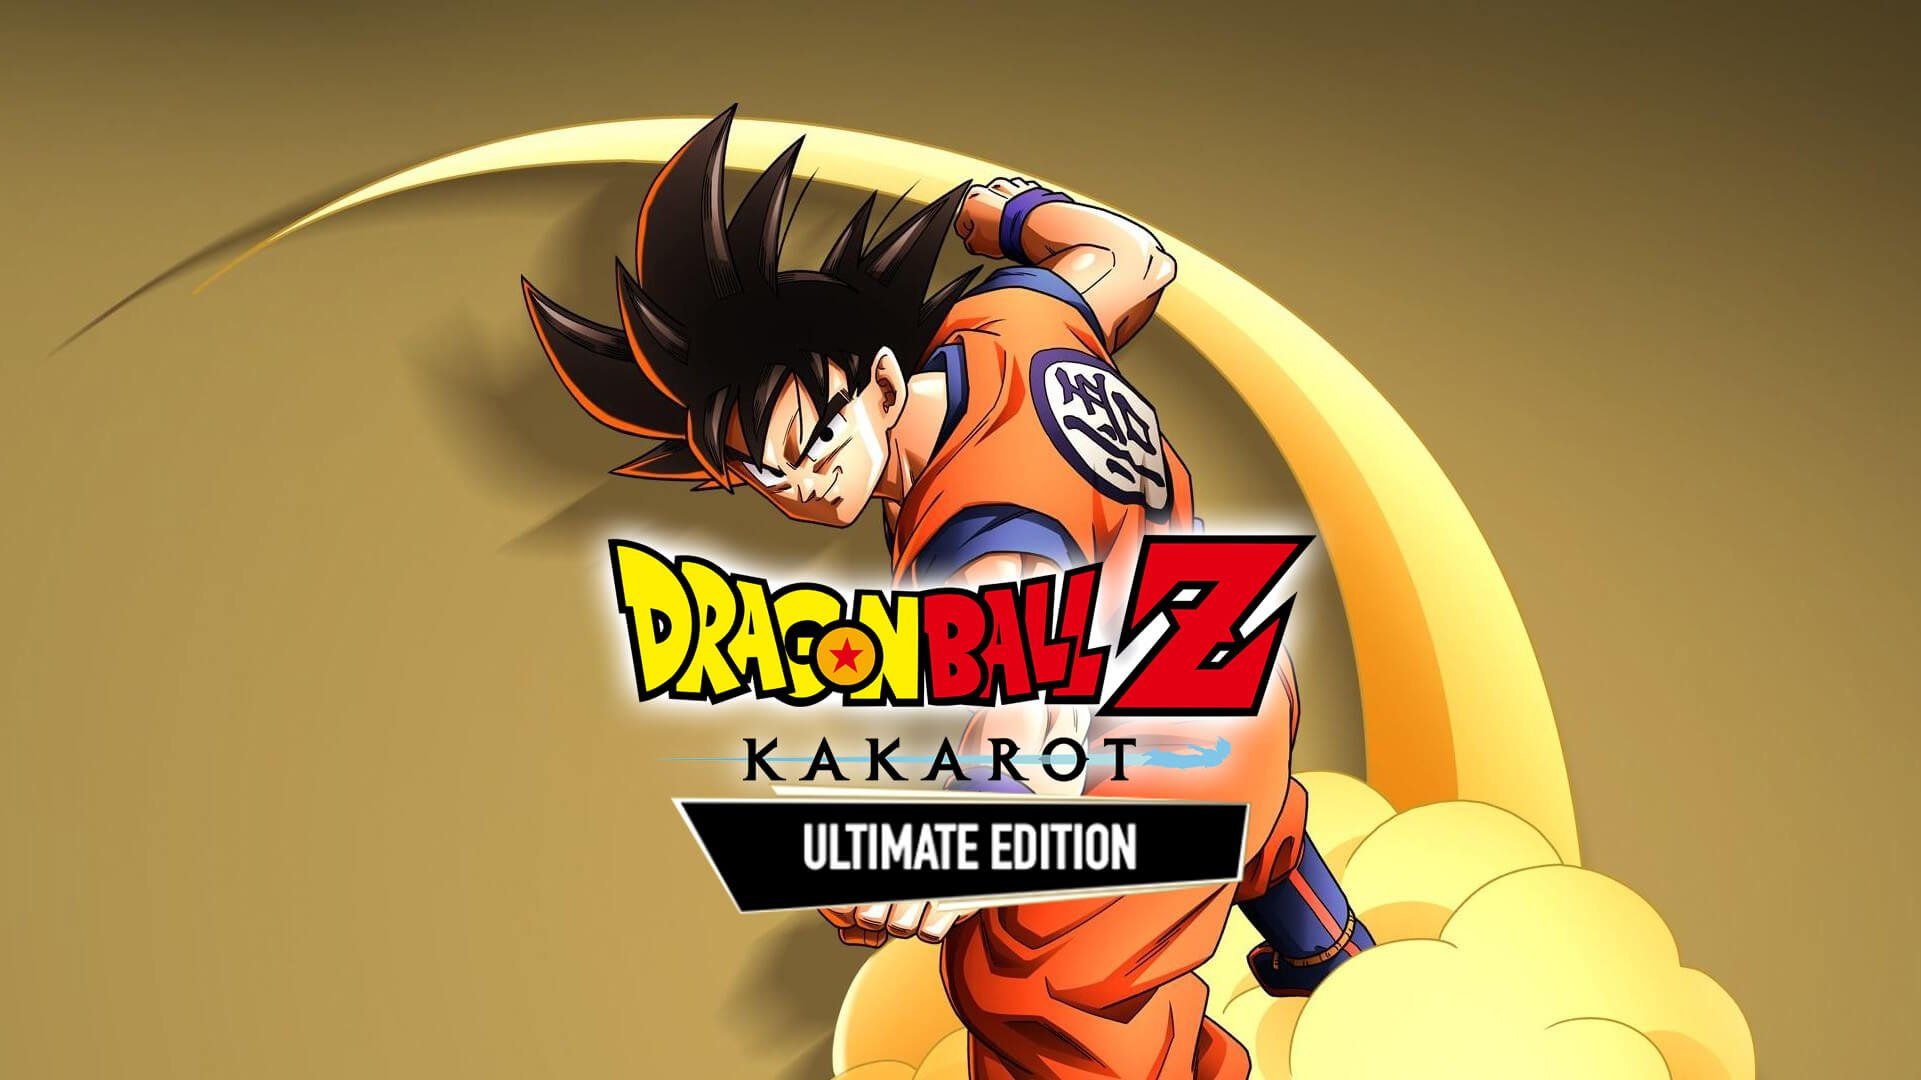 Dragon Ball Z: Kakarot Ultimate Edition RU Steam CD Key